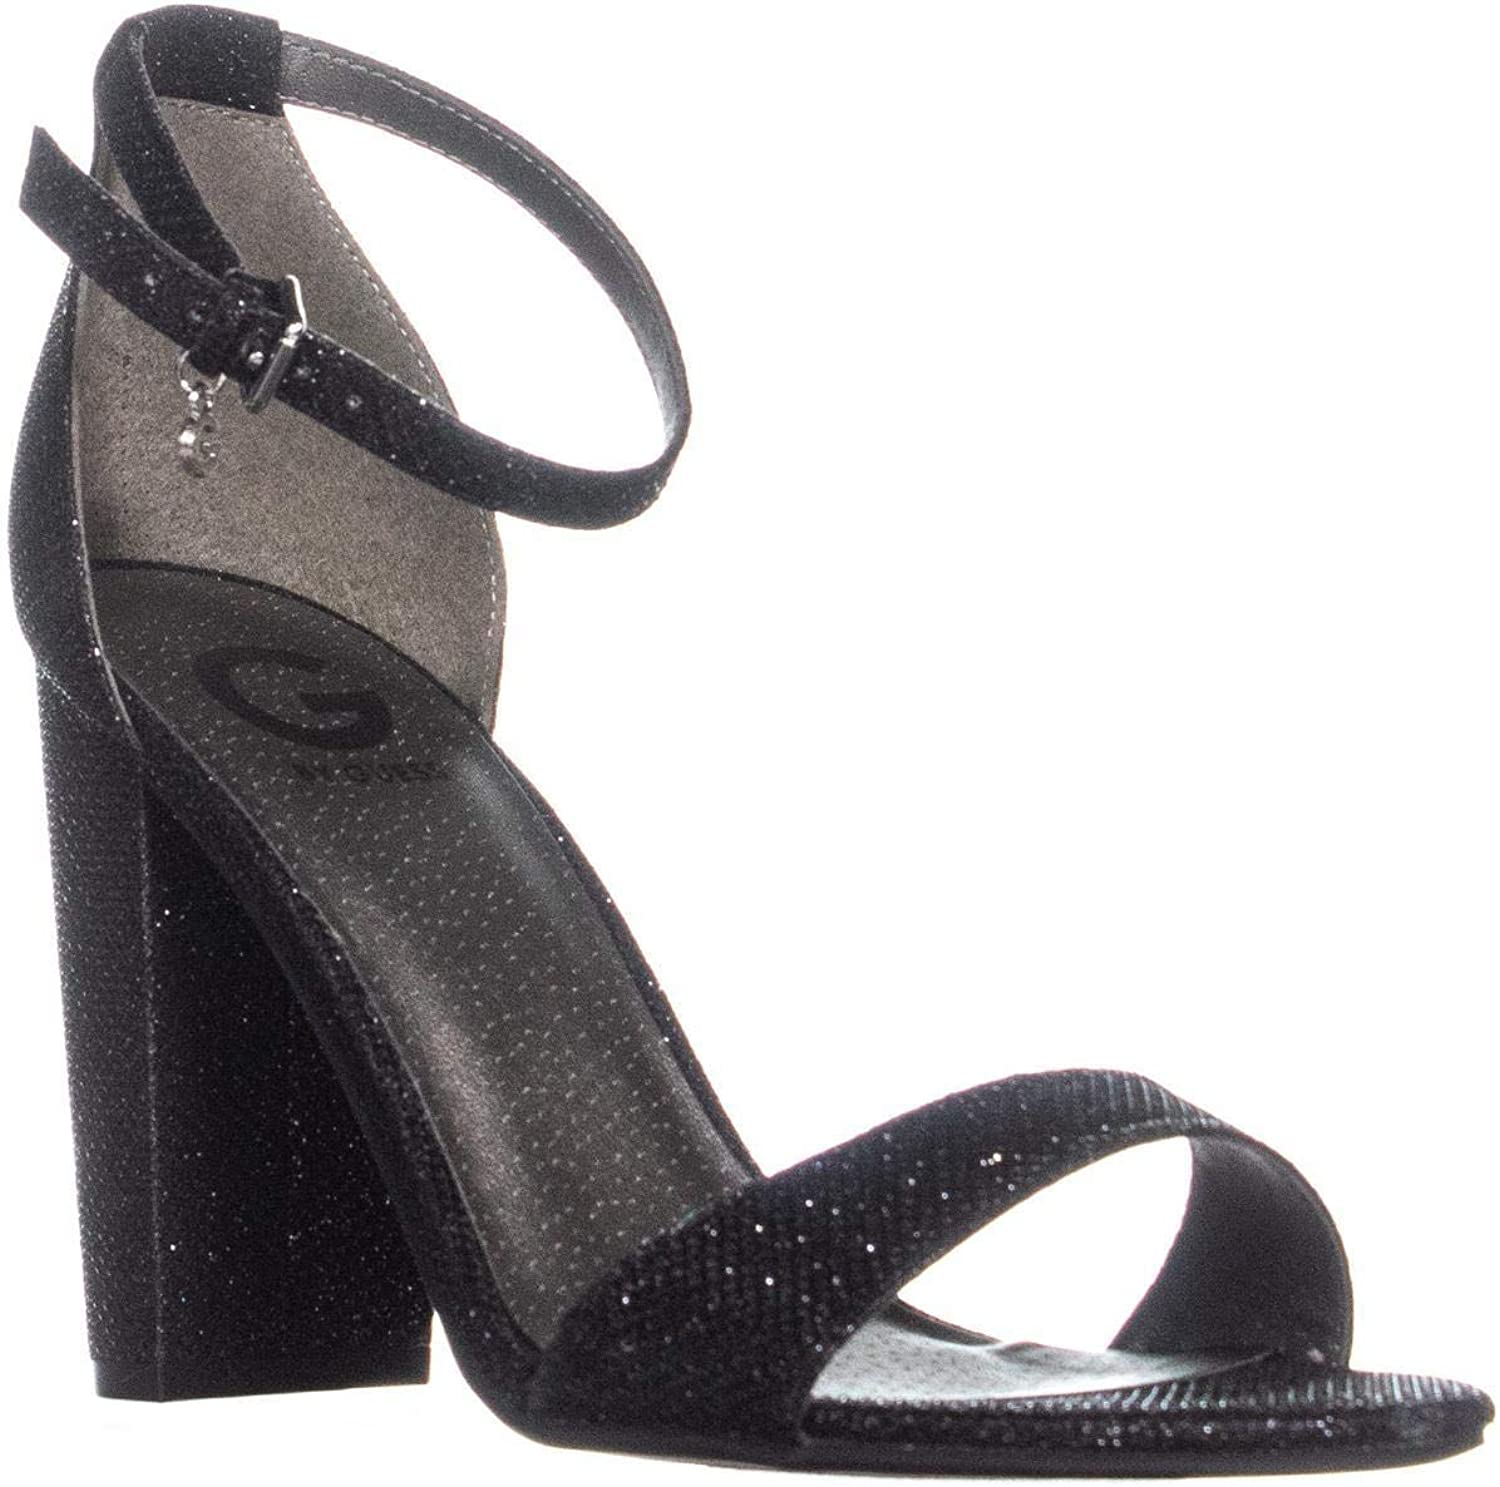 GUESS G Shantel Ankle-Strap Sandals, Black